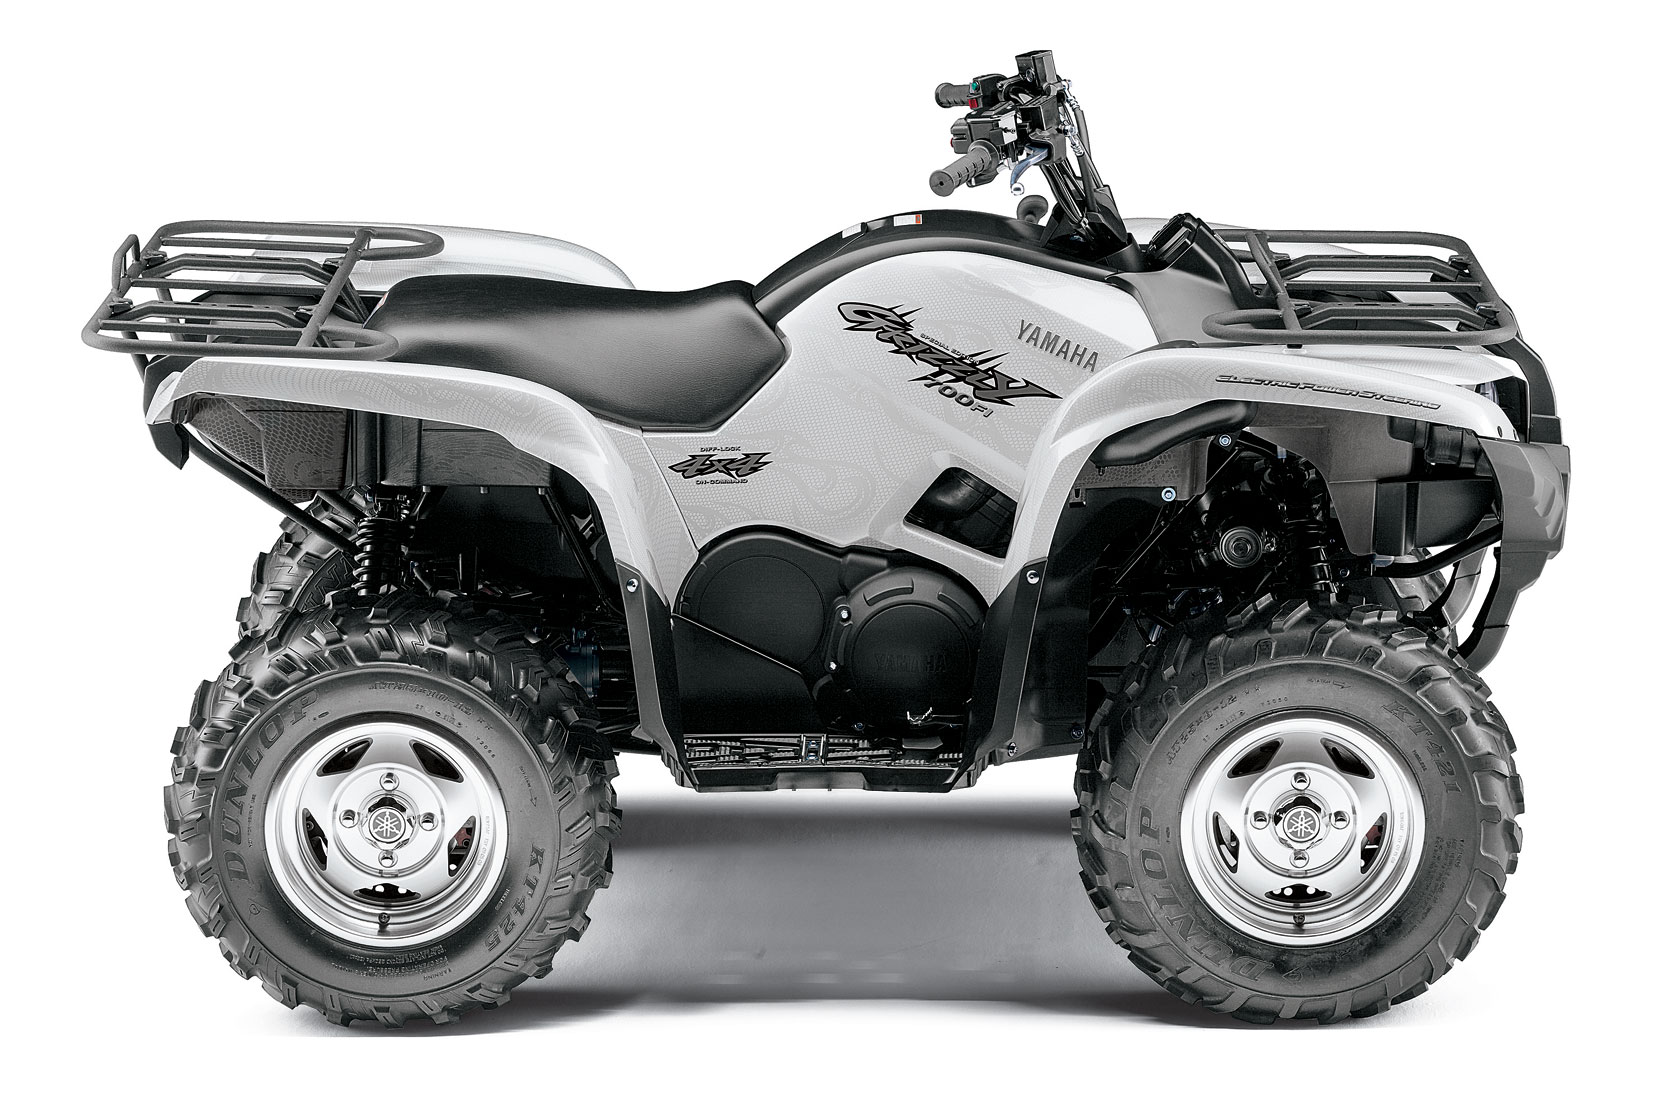 Yamaha grizzly 700 fi eps special edition specs 2009 for 2018 yamaha grizzly 700 specs